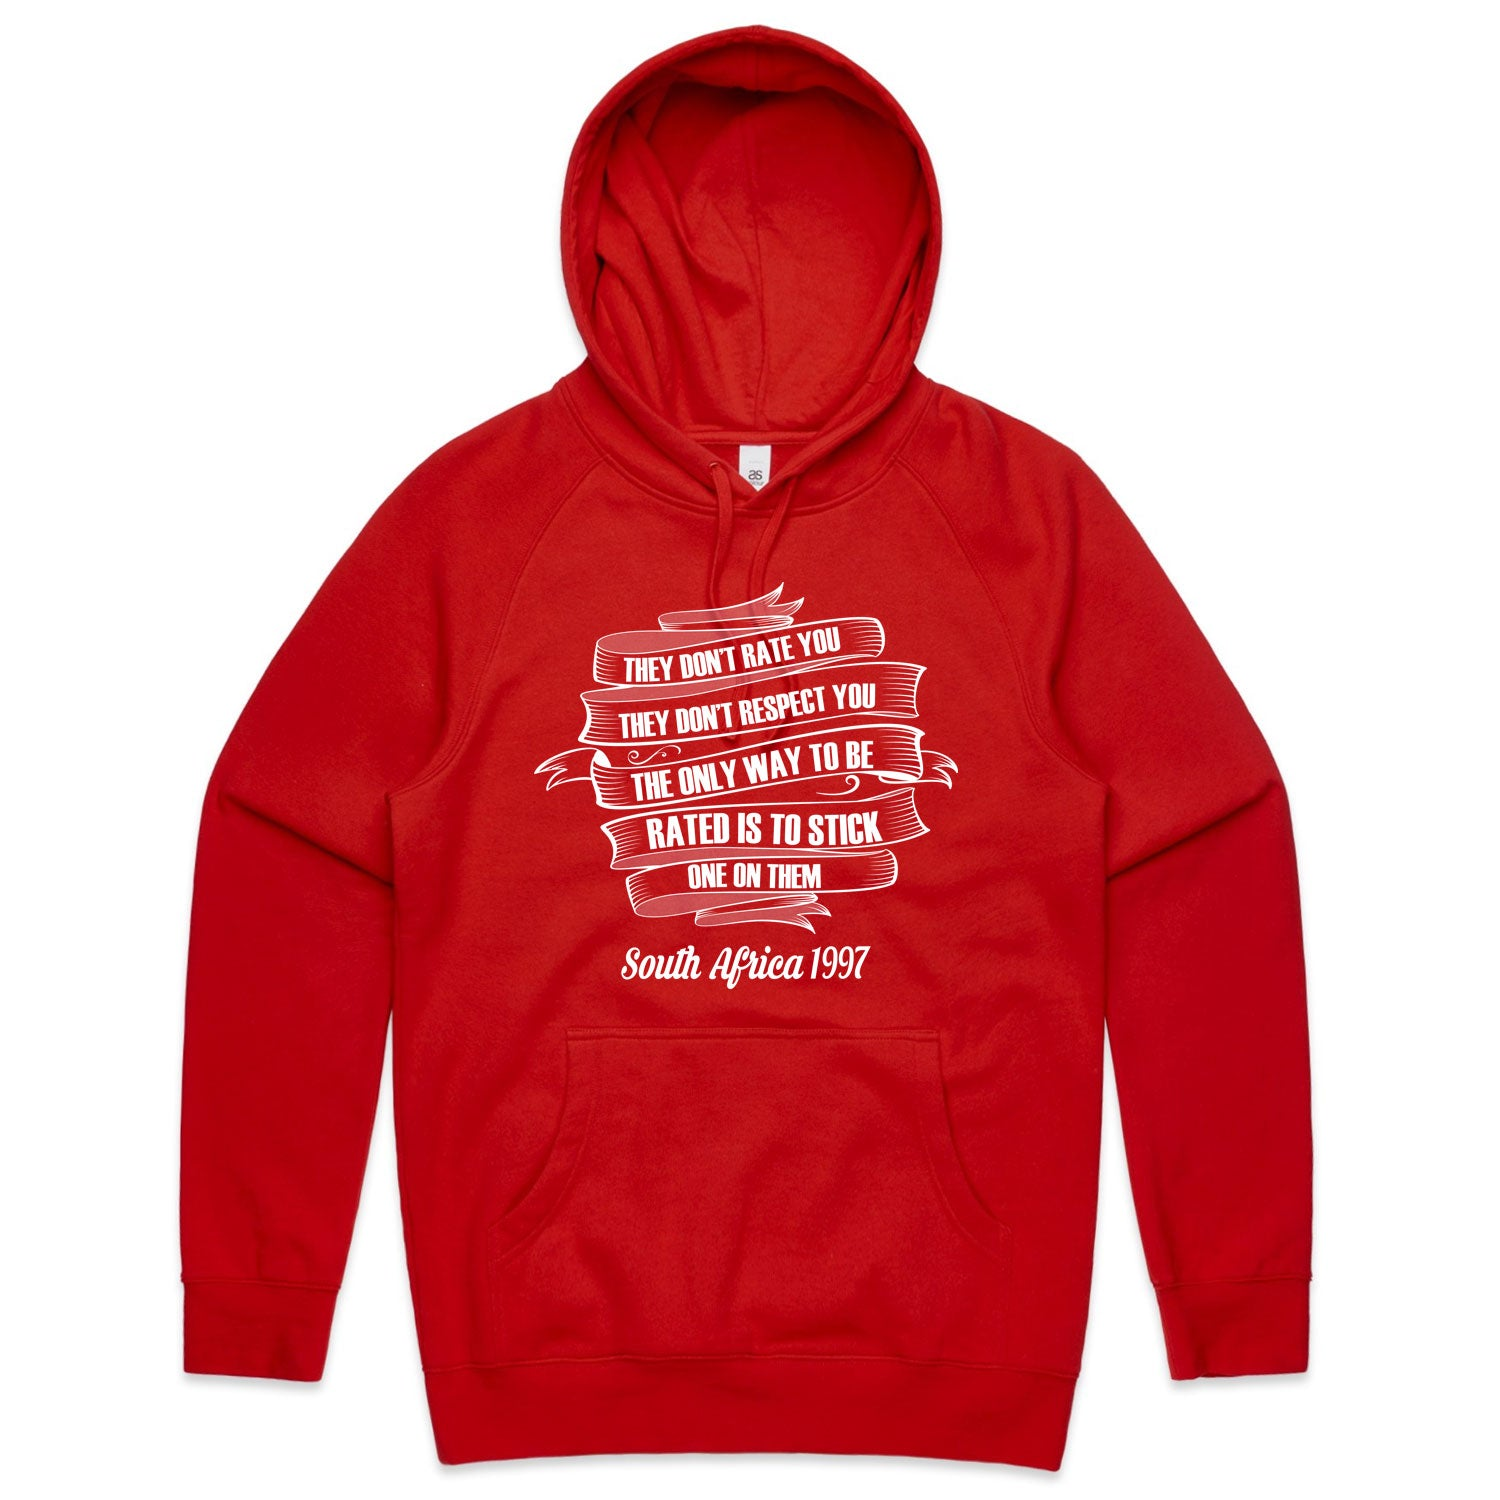 Unisex They Don't Respect You Rugby Hoody - First XV rugbystuff.com